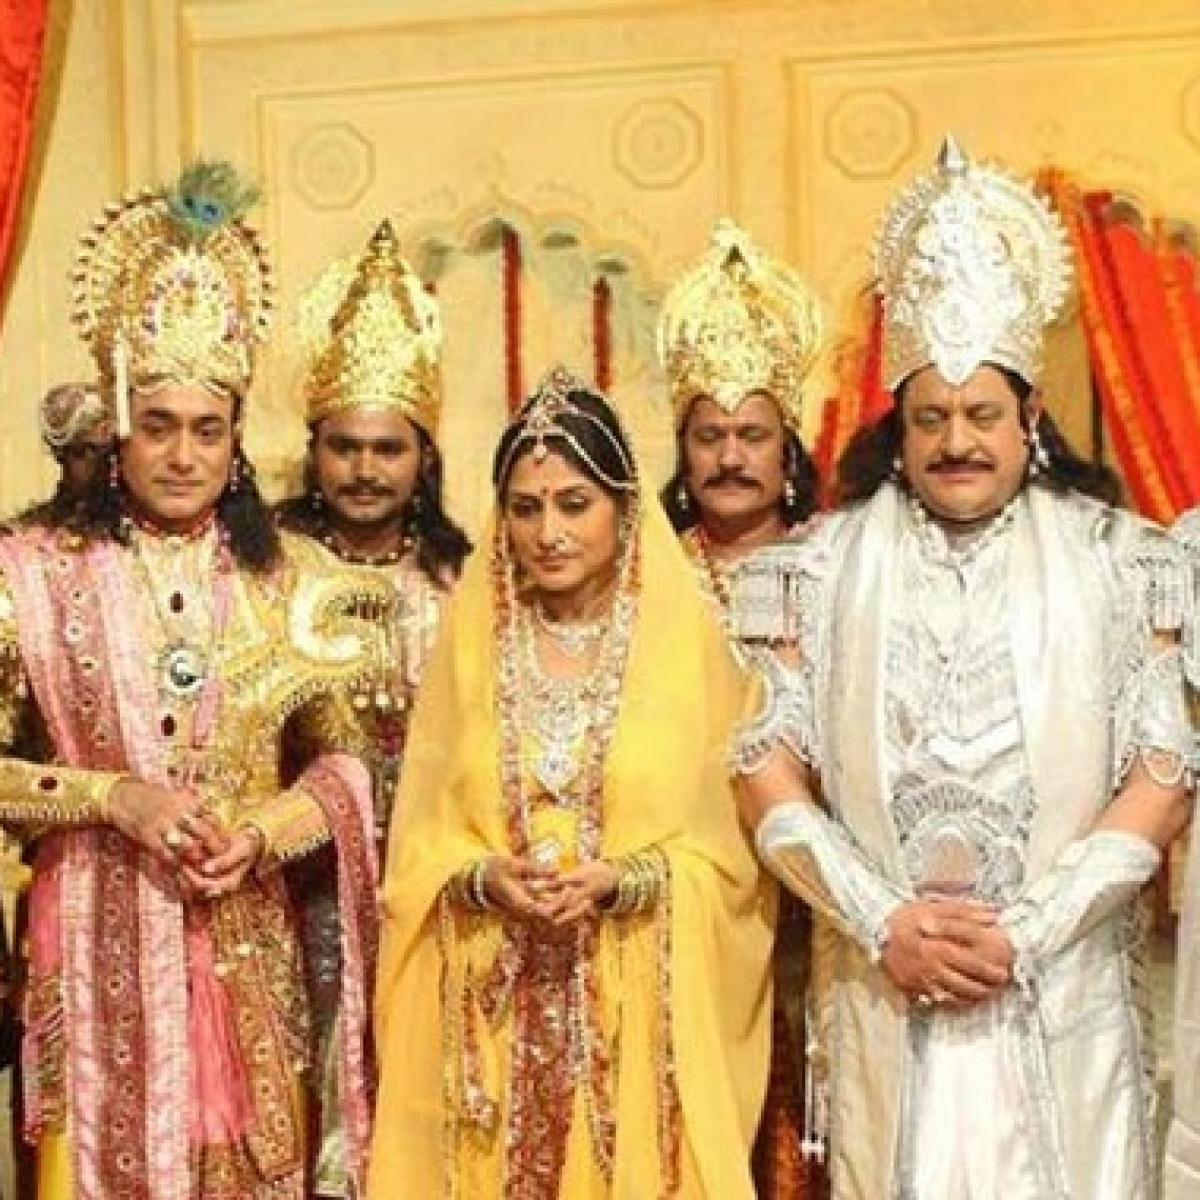 Time travel: Mahabharat actors reveal memorable facts about the cult show